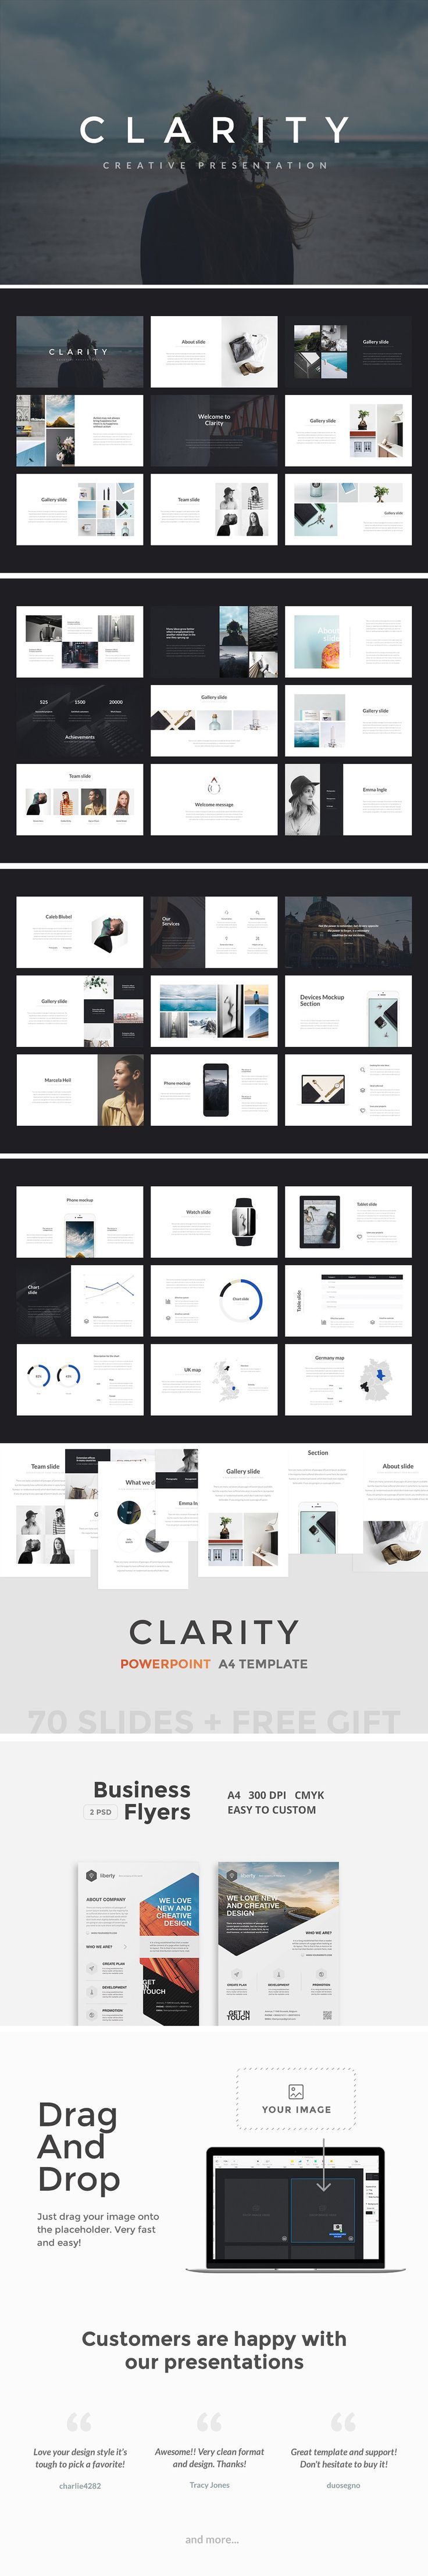 Best Powerpoint Templates  Best Images On